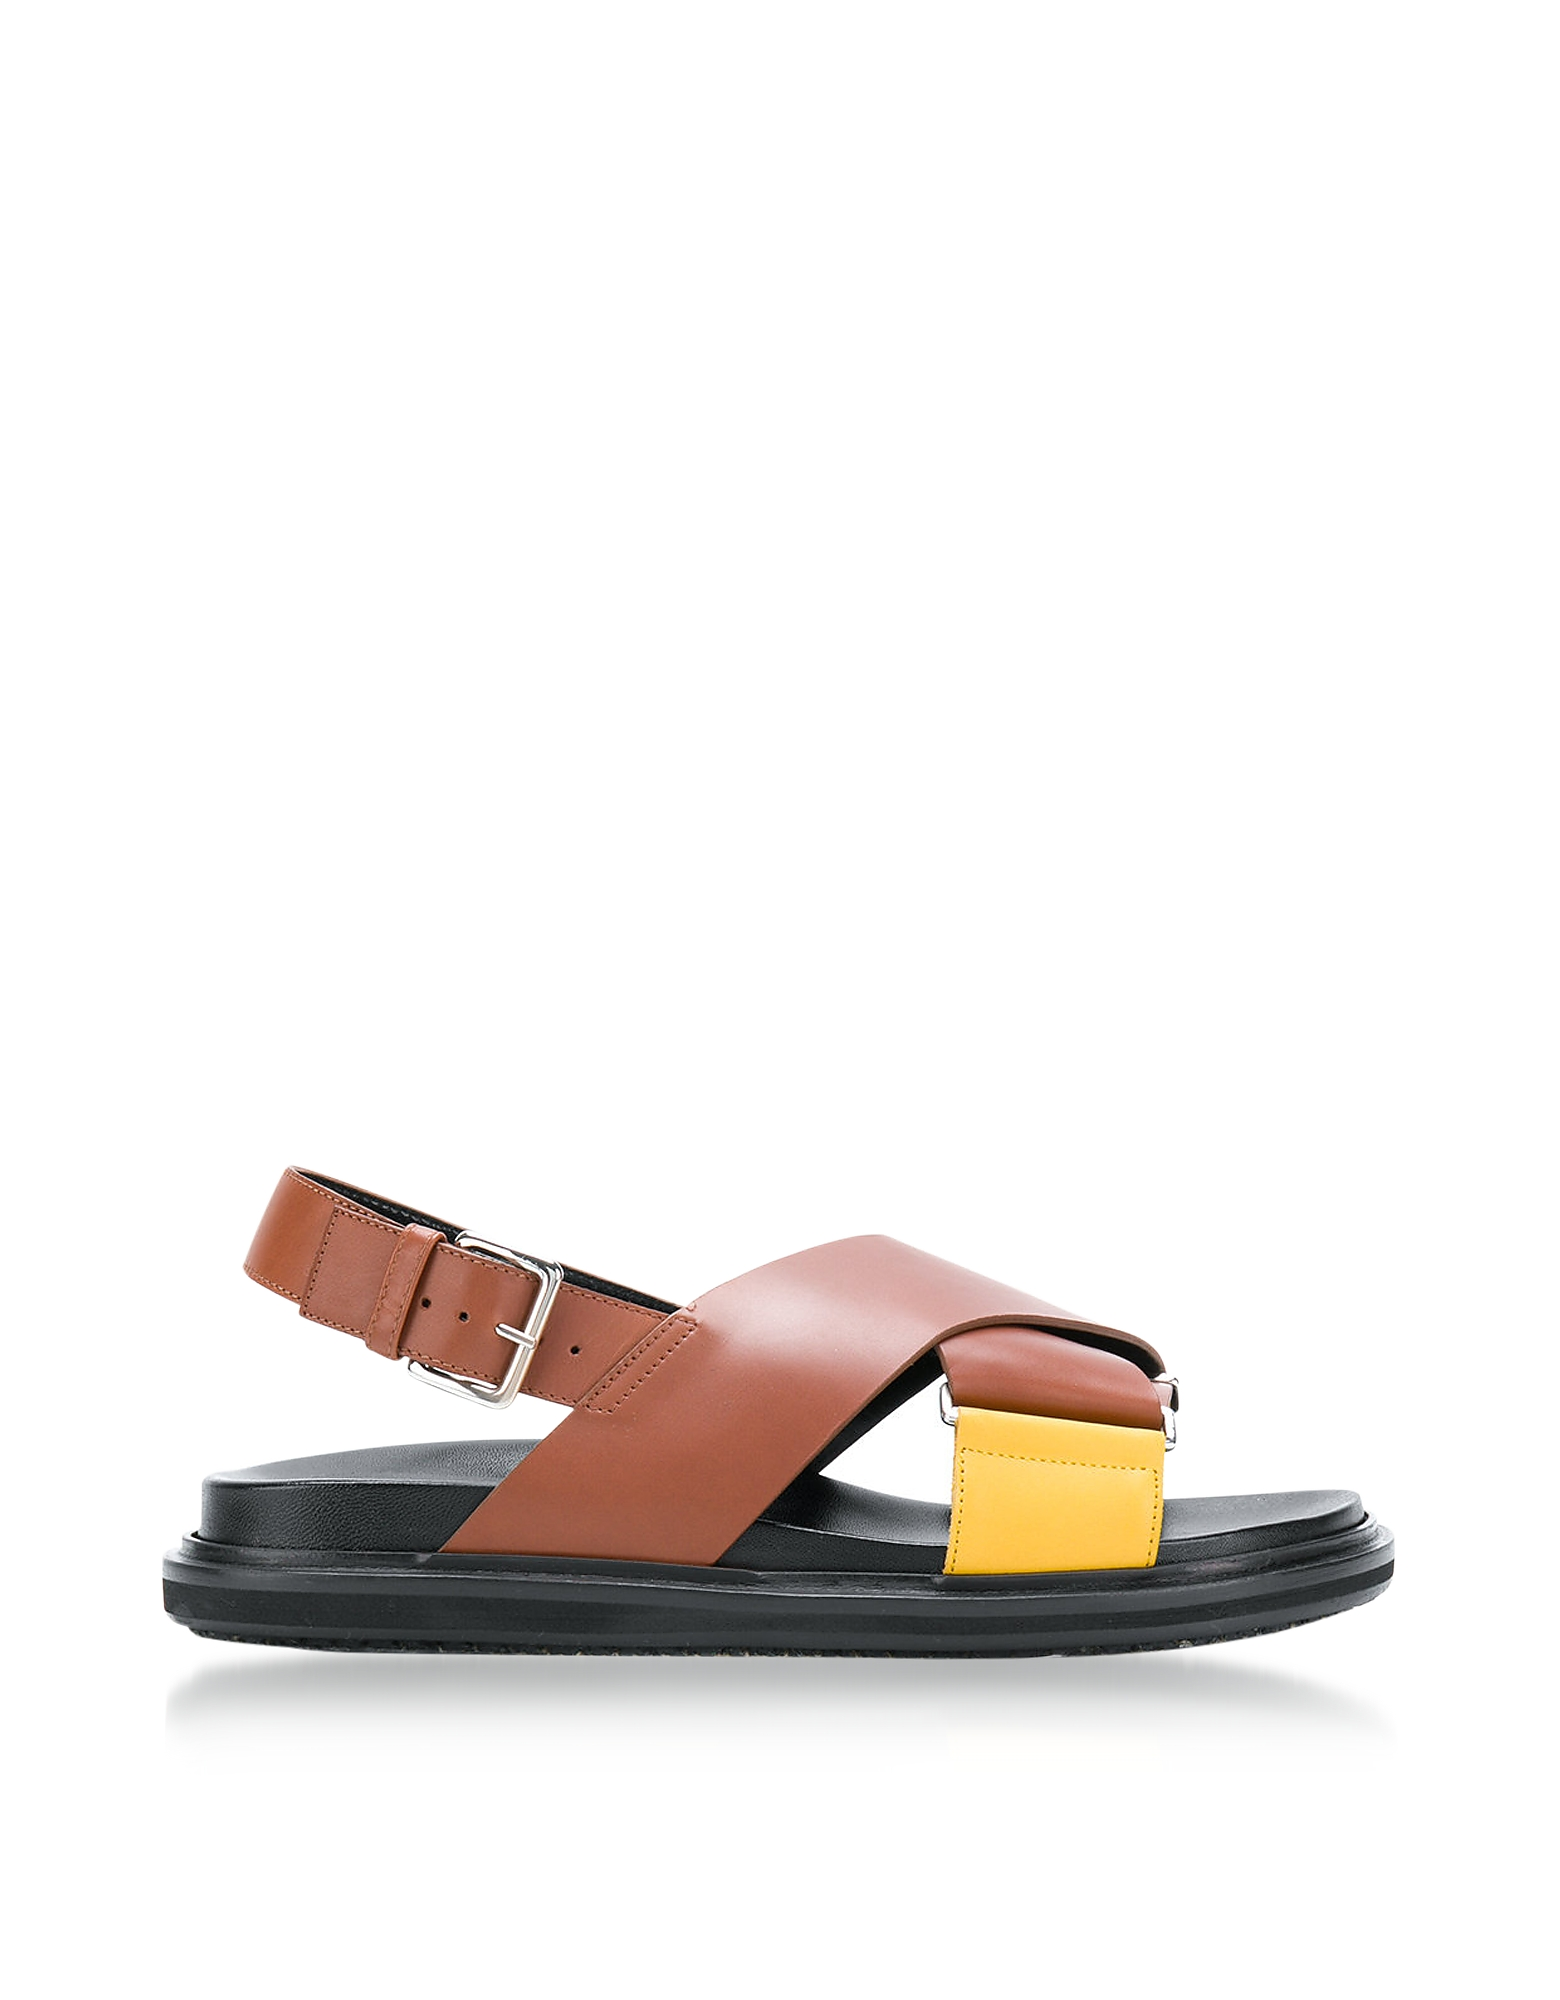 Marni Shoes, Lemon and Peanuts Leather Fussbett Sandals